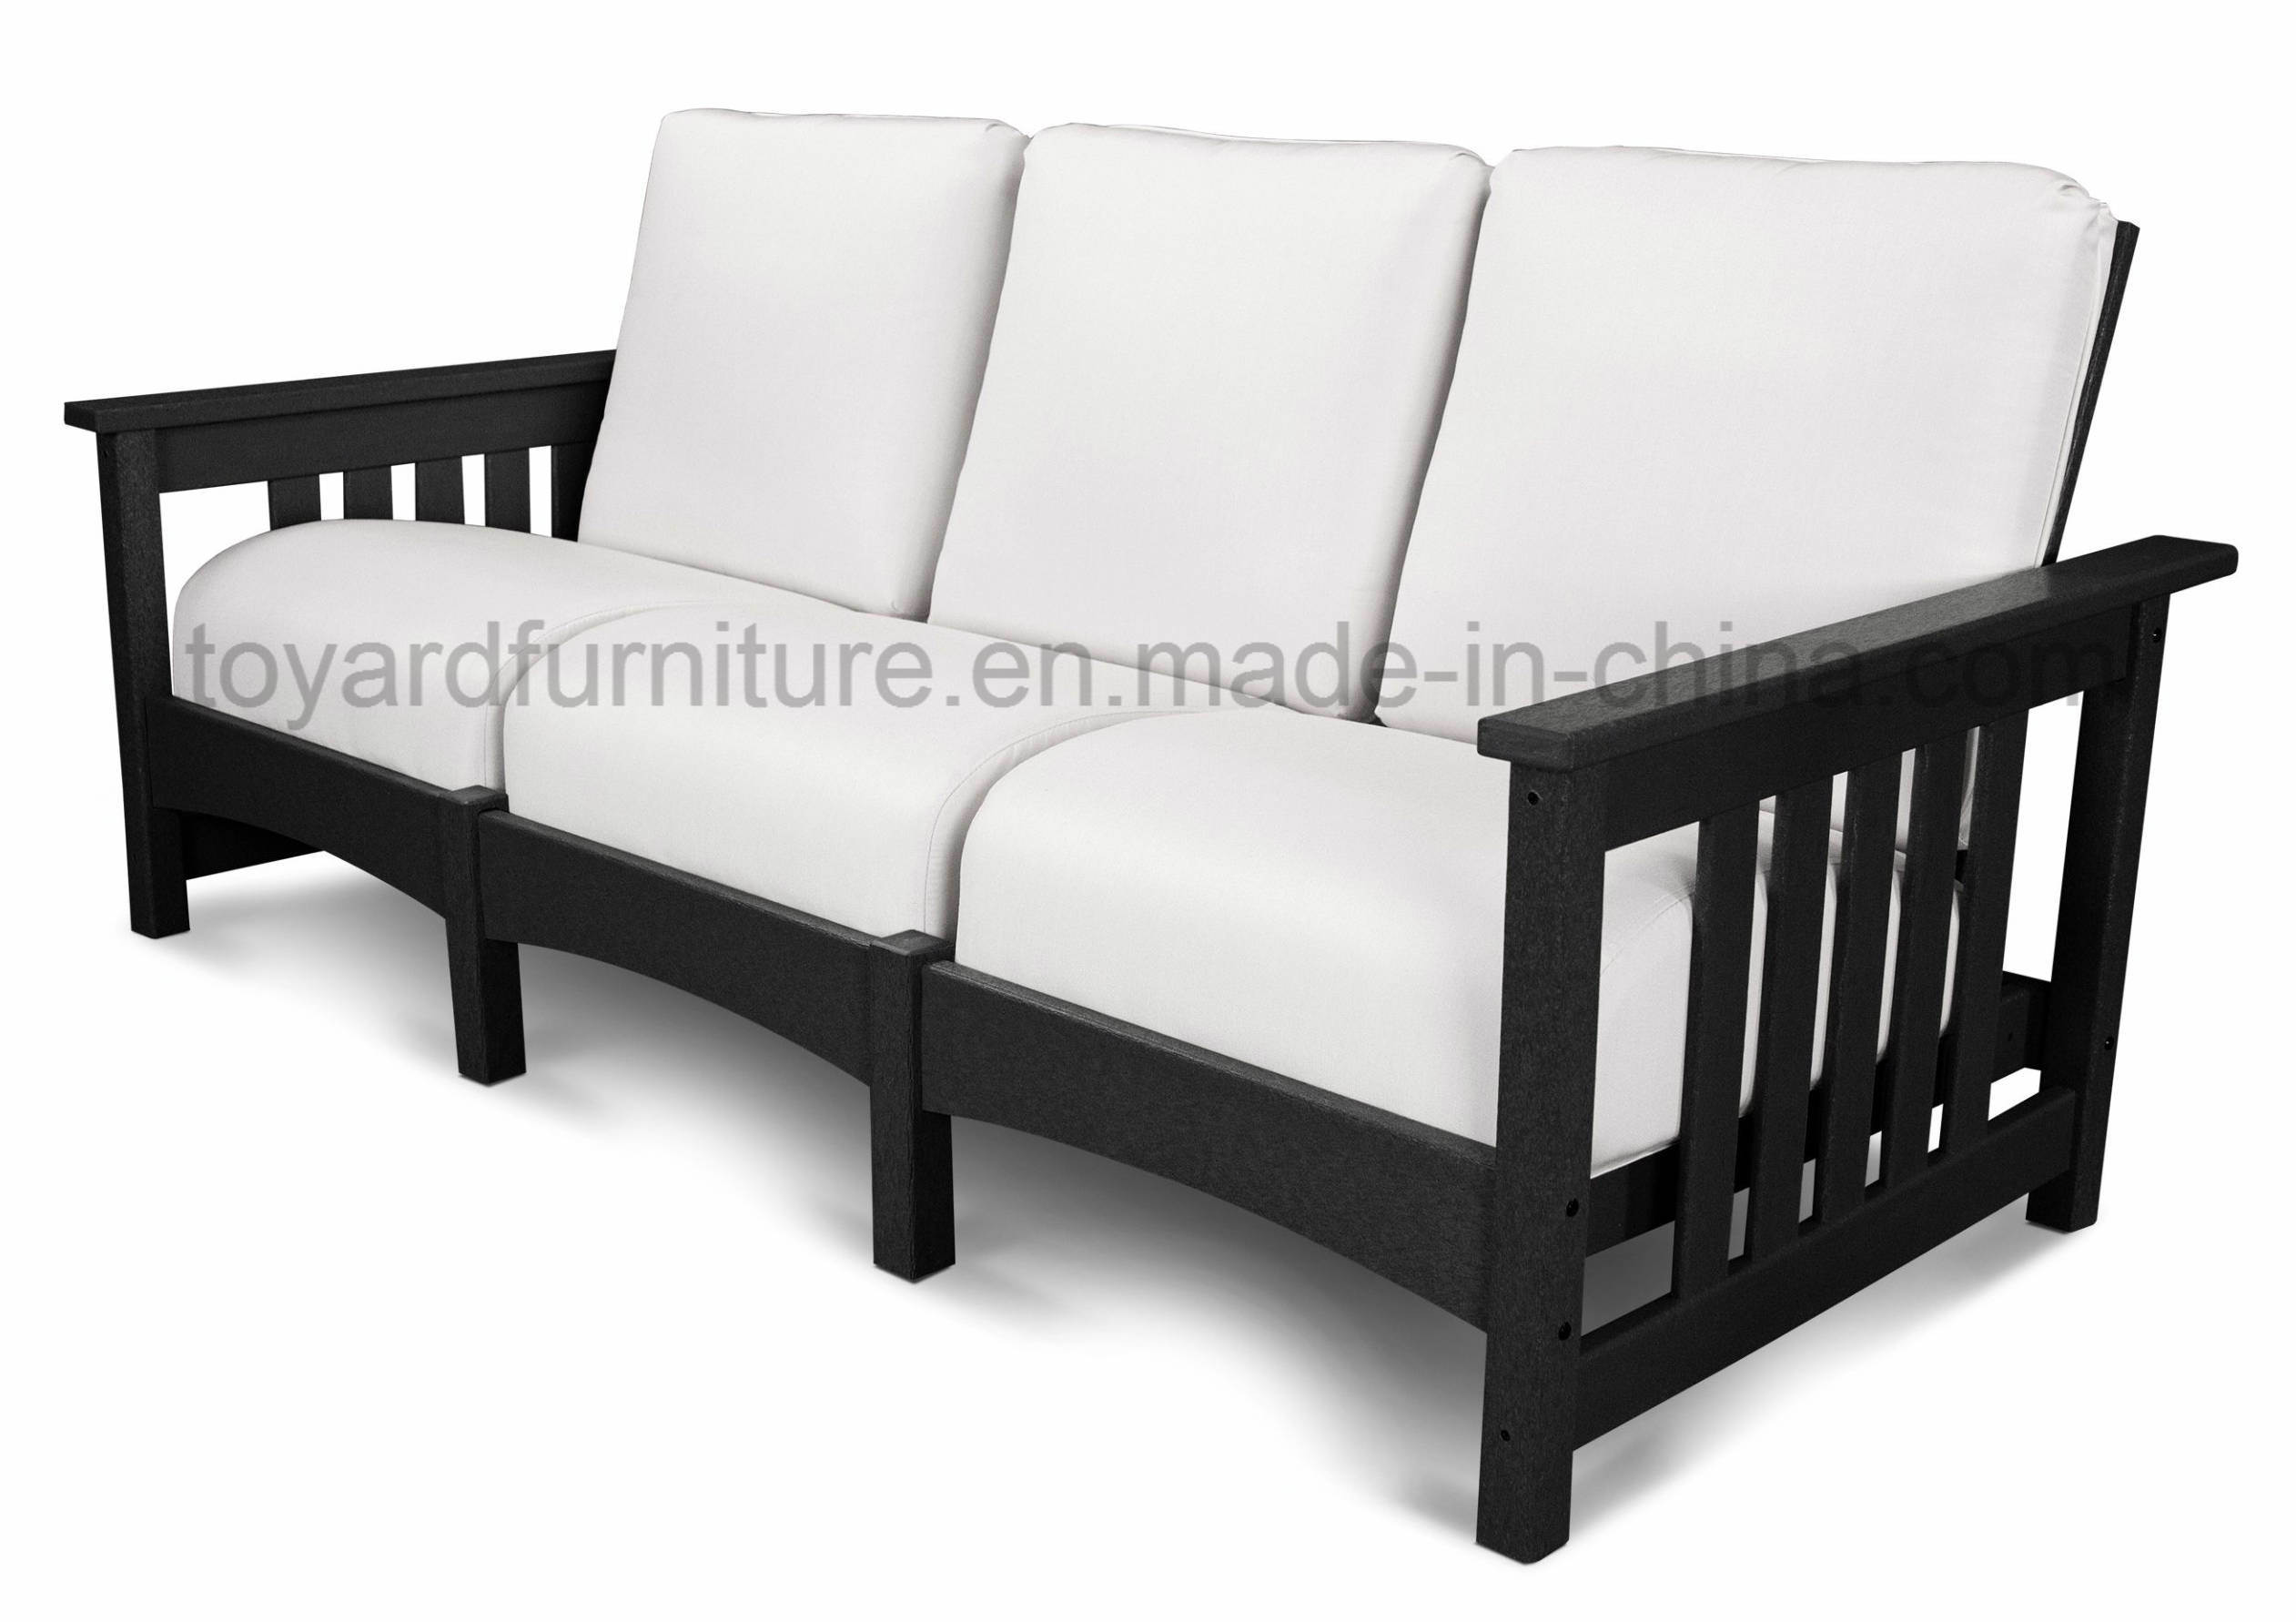 [Hot Item] Top Quality Modern Simply Design Wooden Frame Outdoor Garden  Furniture 3-Seaters Sofa for Hotel Club